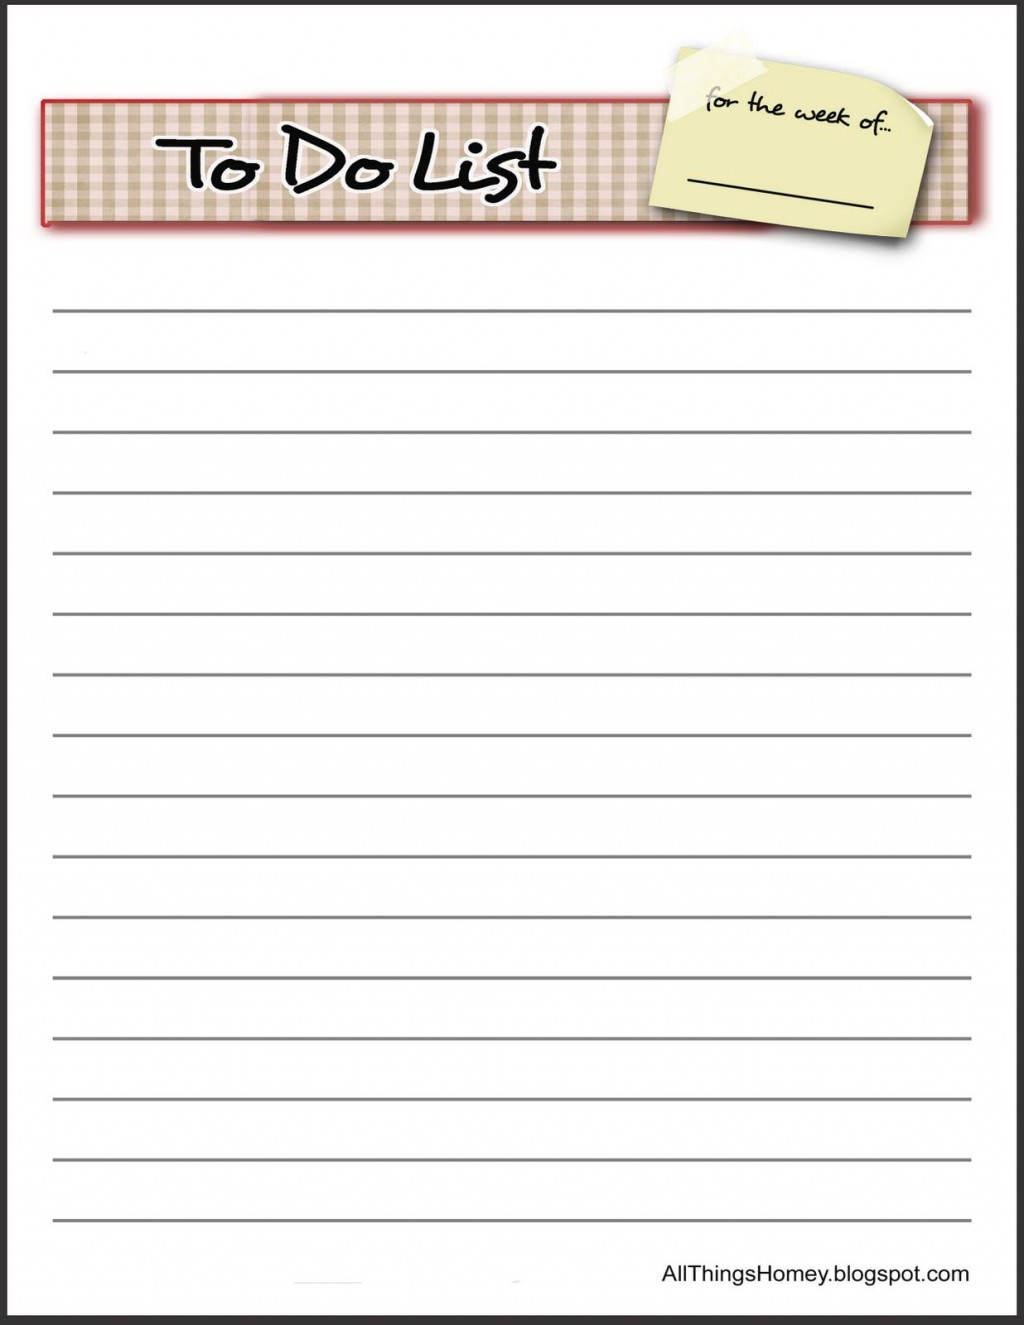 009 Awful To Do List Template Word High Def Large